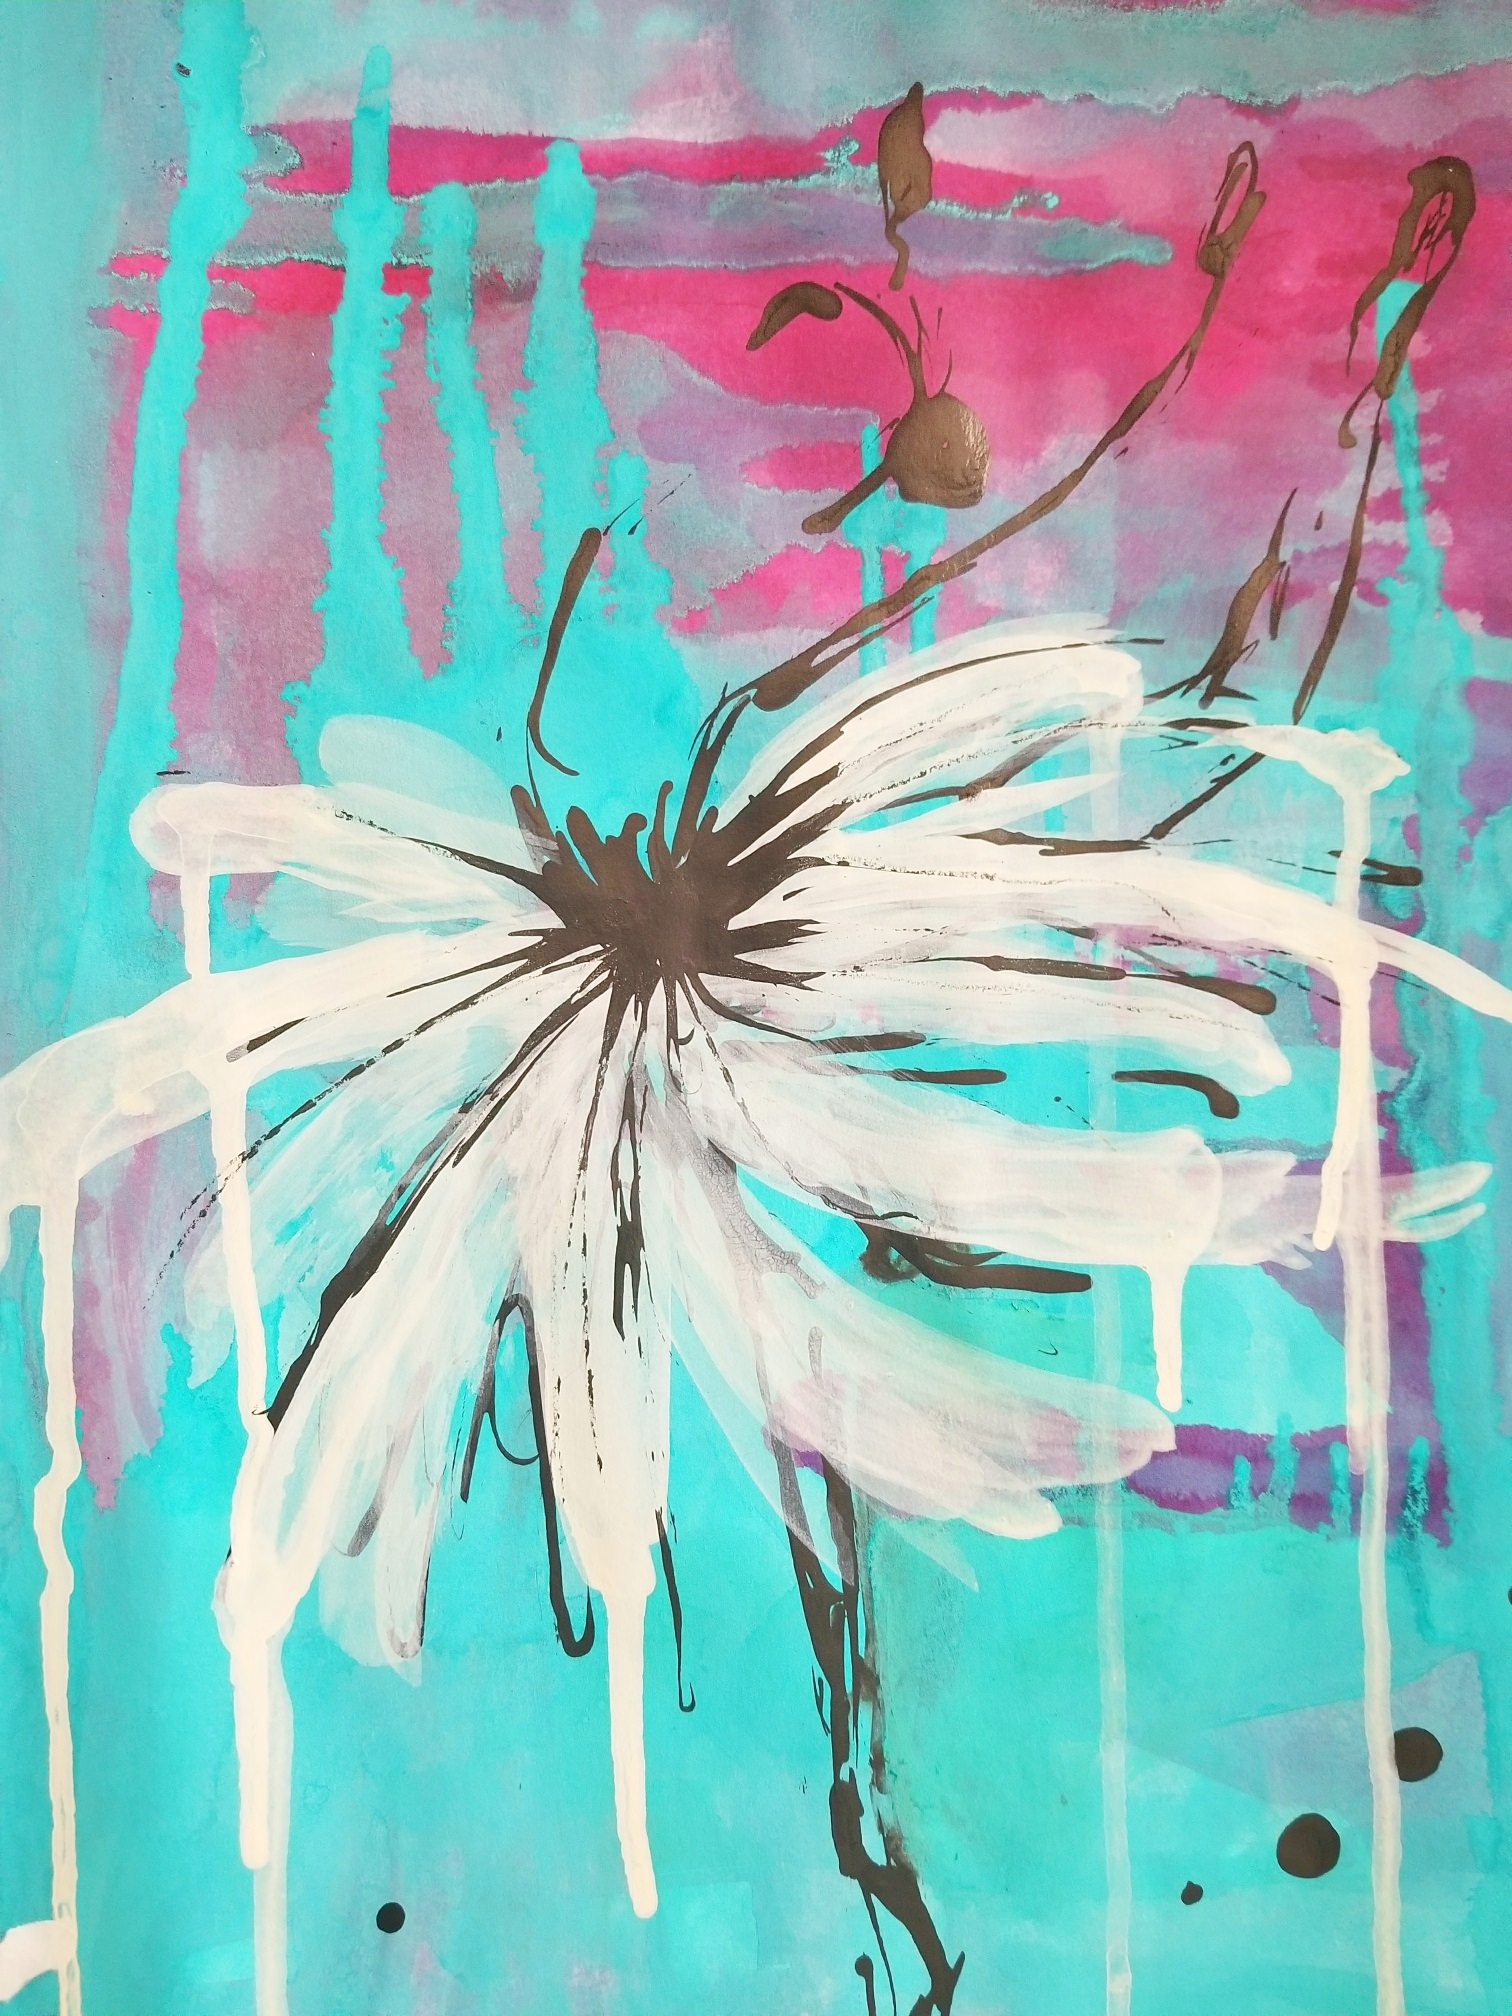 """Rainy Ballet II (SOLD) - Acrylic and ink on 98lb mixed media paper 11"""" x 14""""Price for original: $75"""